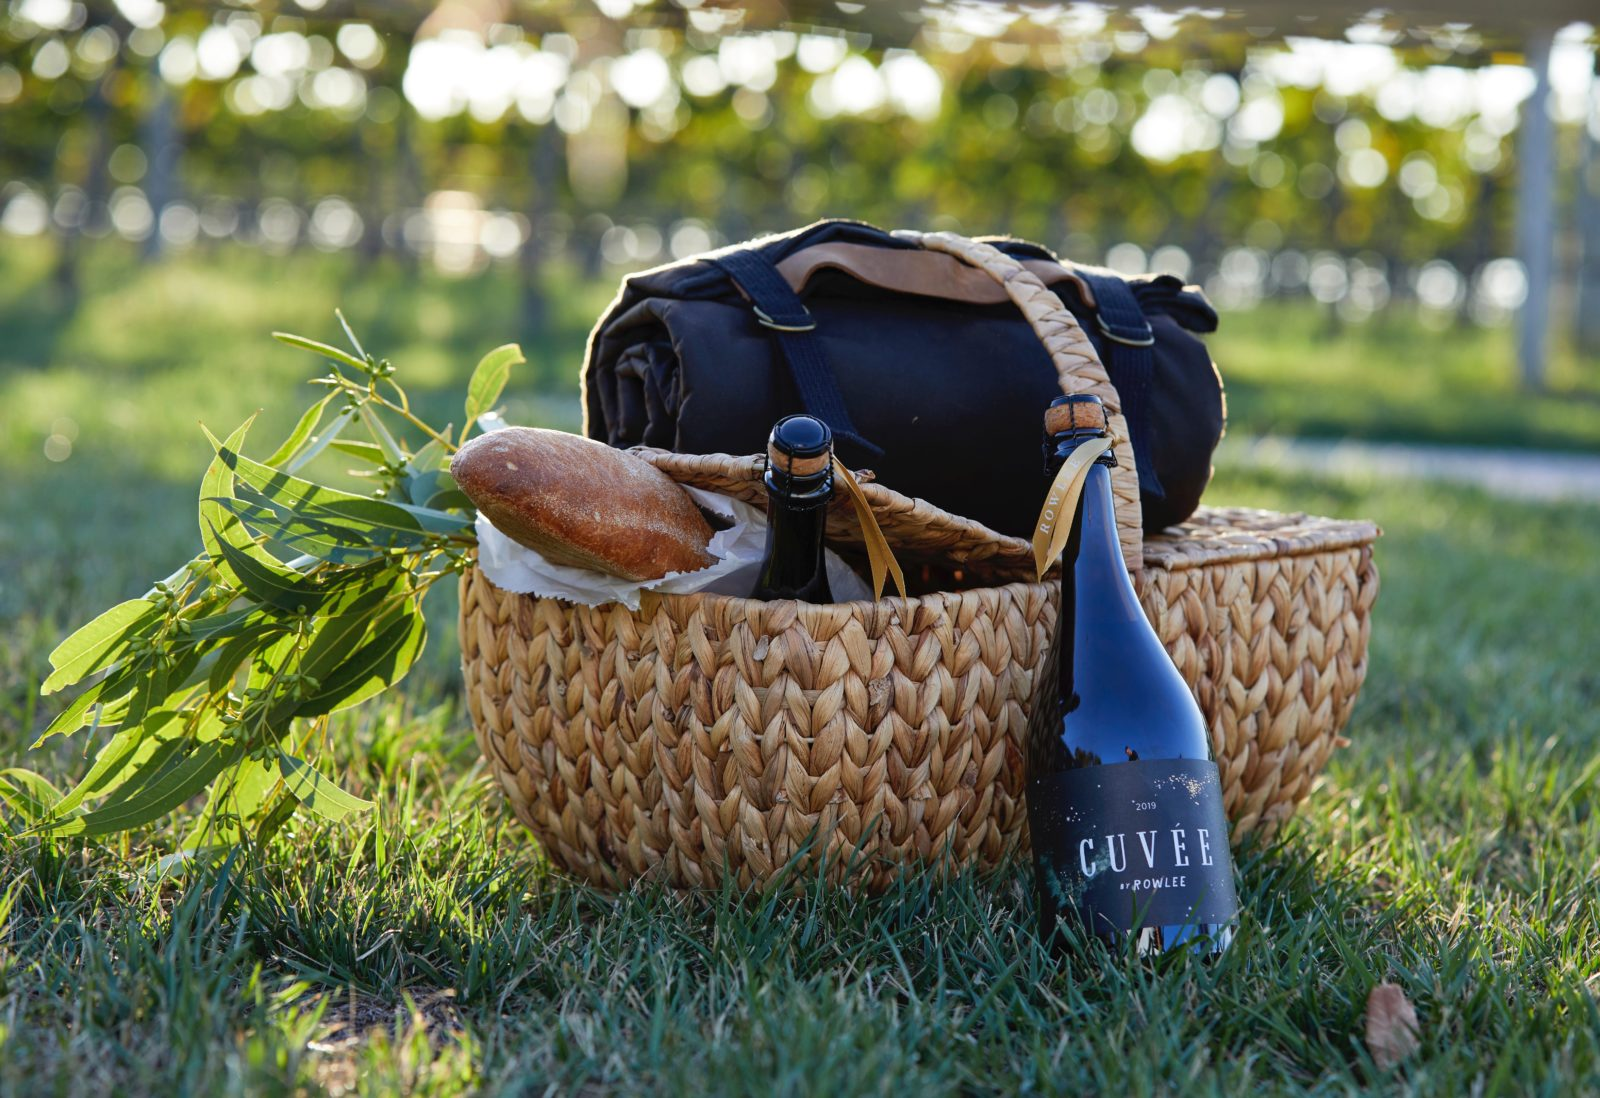 Picnic Basket ready to go with bread and wine sitting on the grass by the vineyard